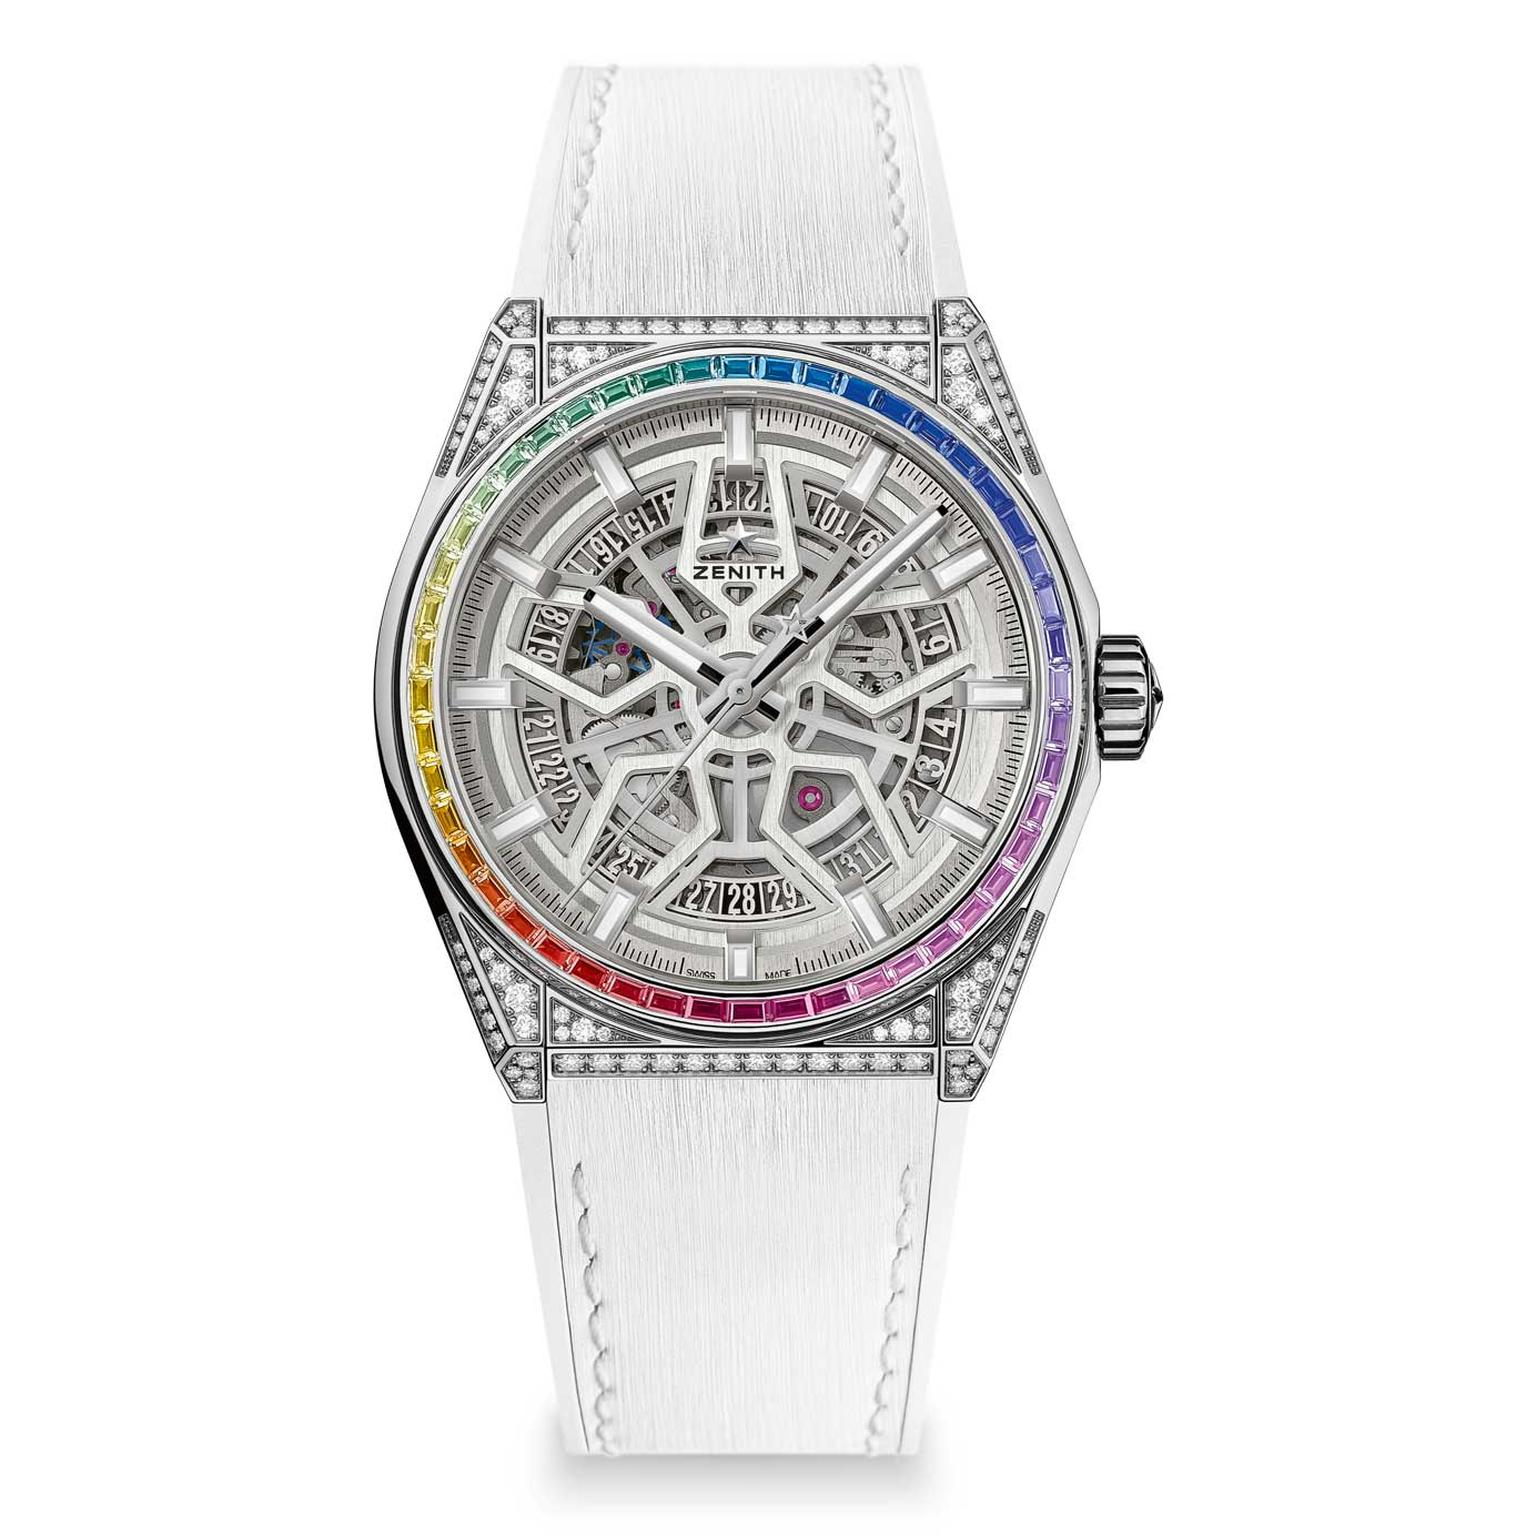 Zenith Defy Classic High Jewelry titanium Rainbow sapphire watch